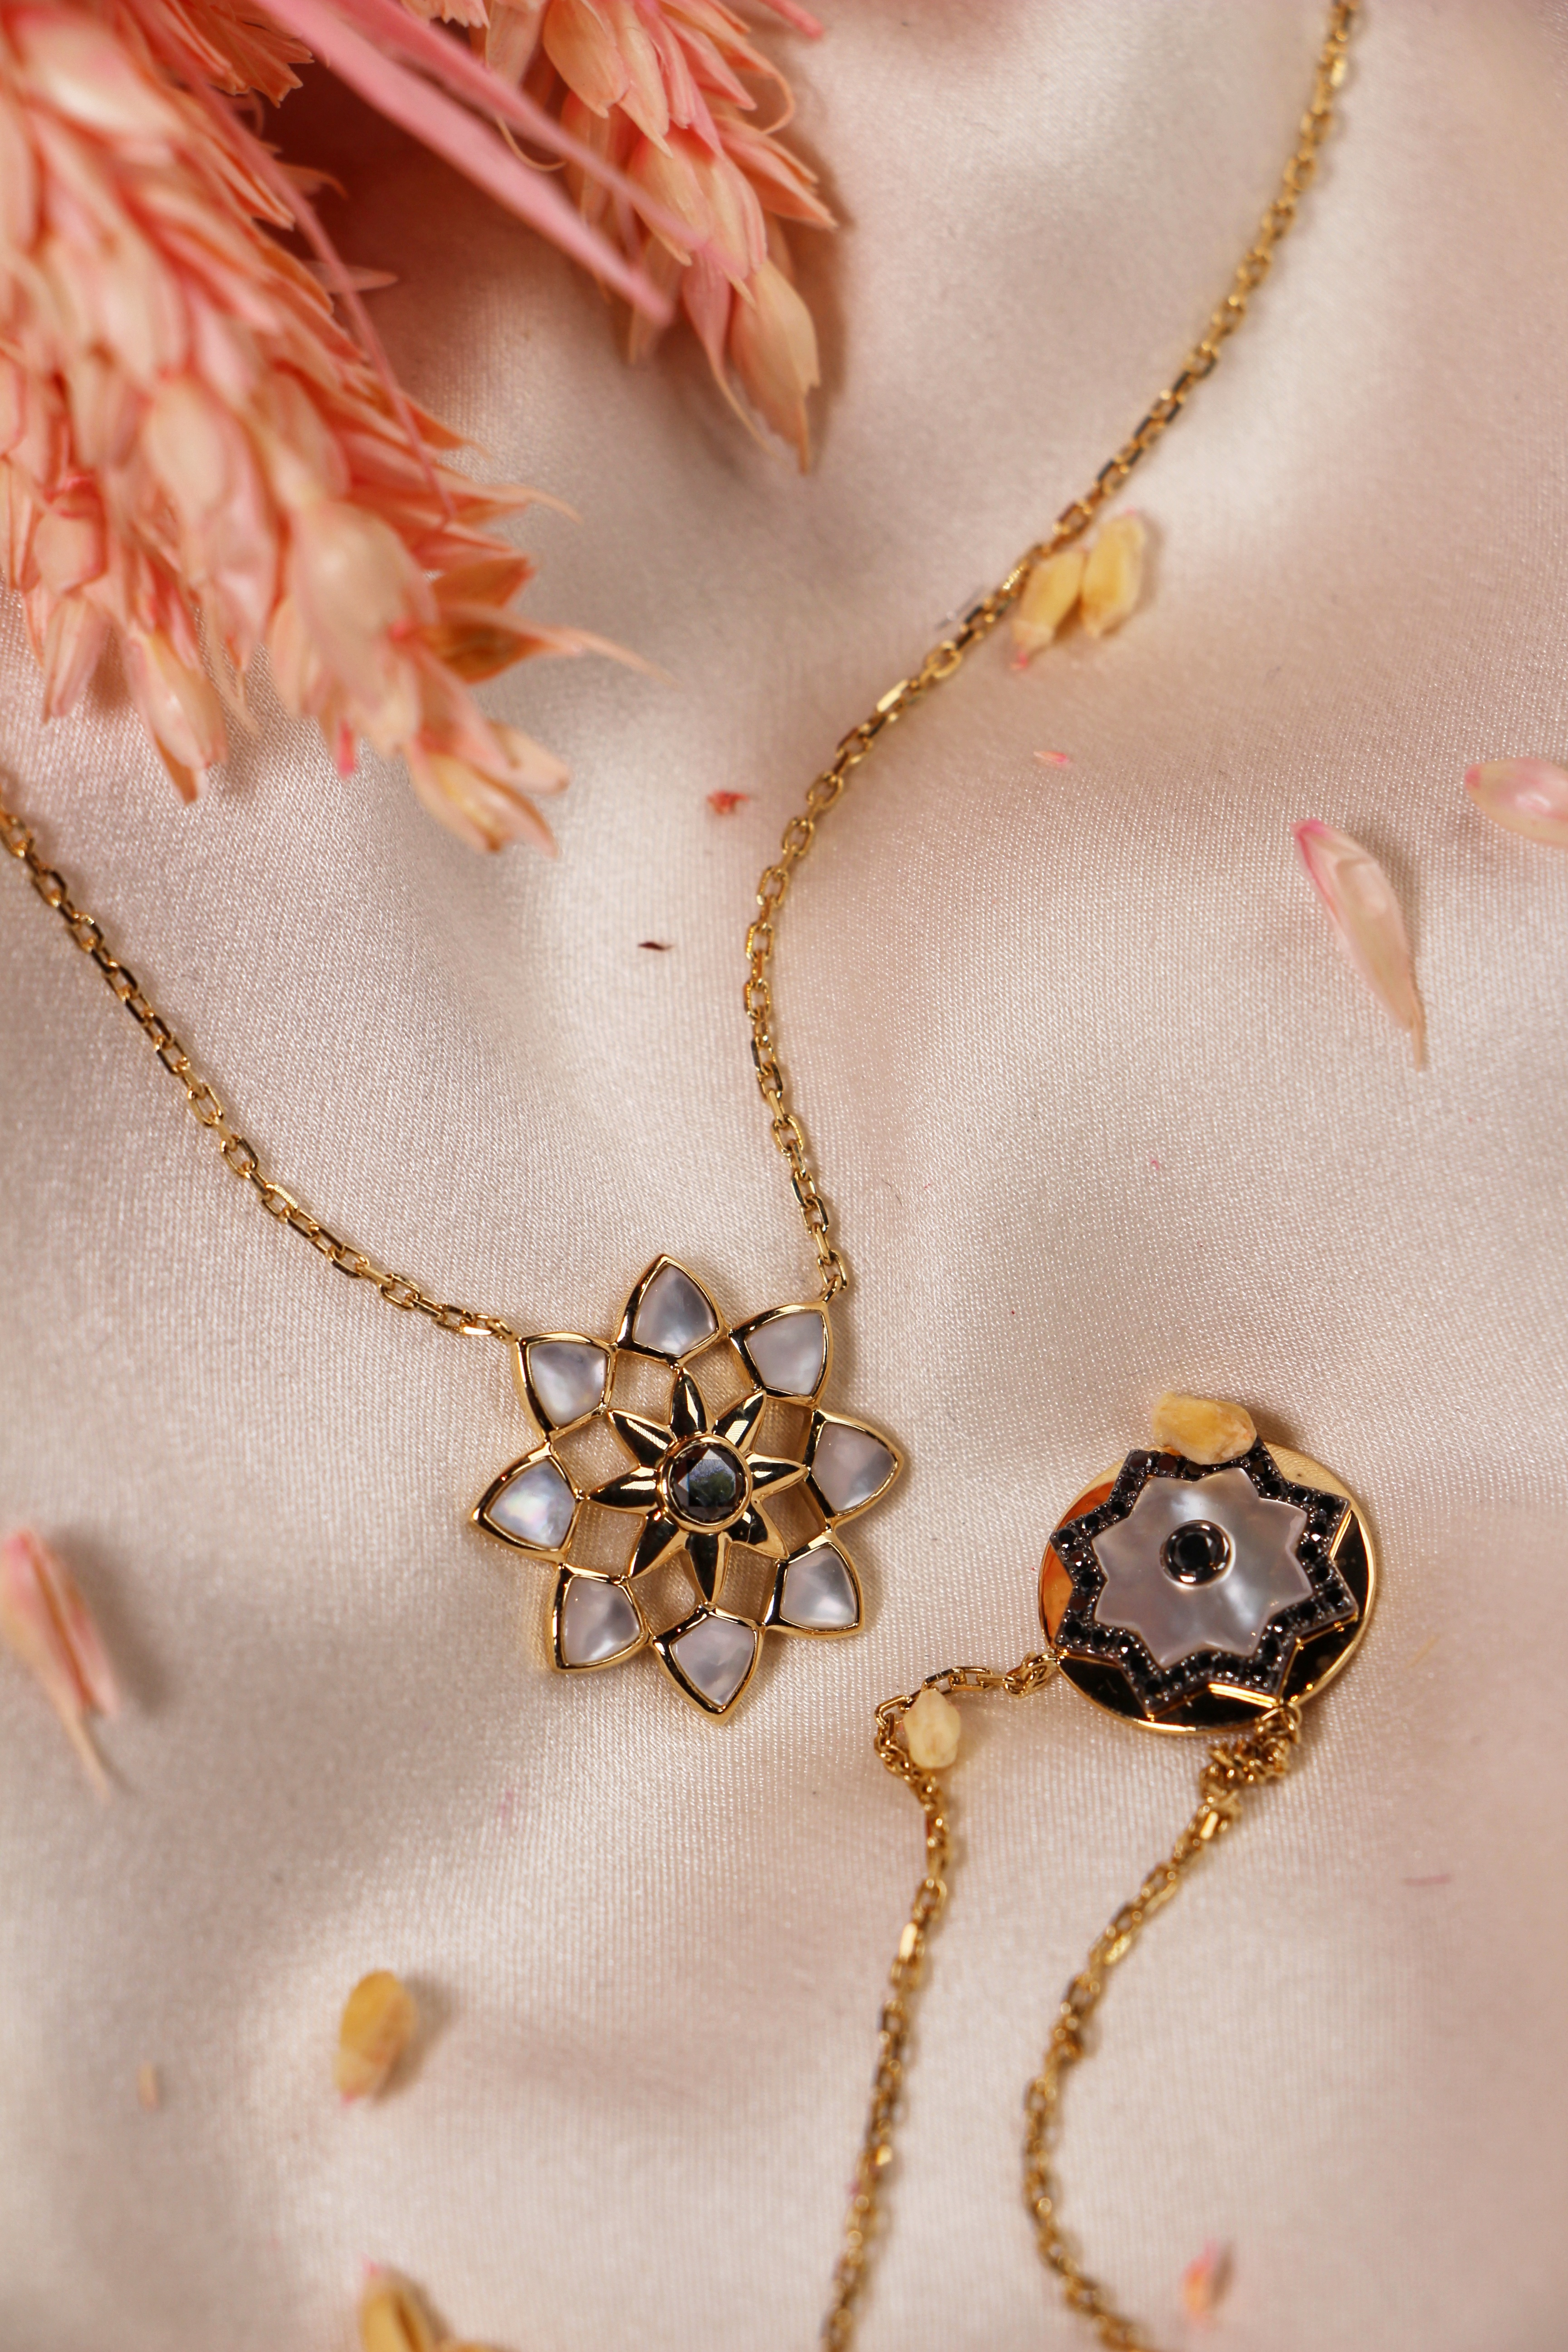 White Orient Necklace by Amira Karaouli on curated-crowd.com